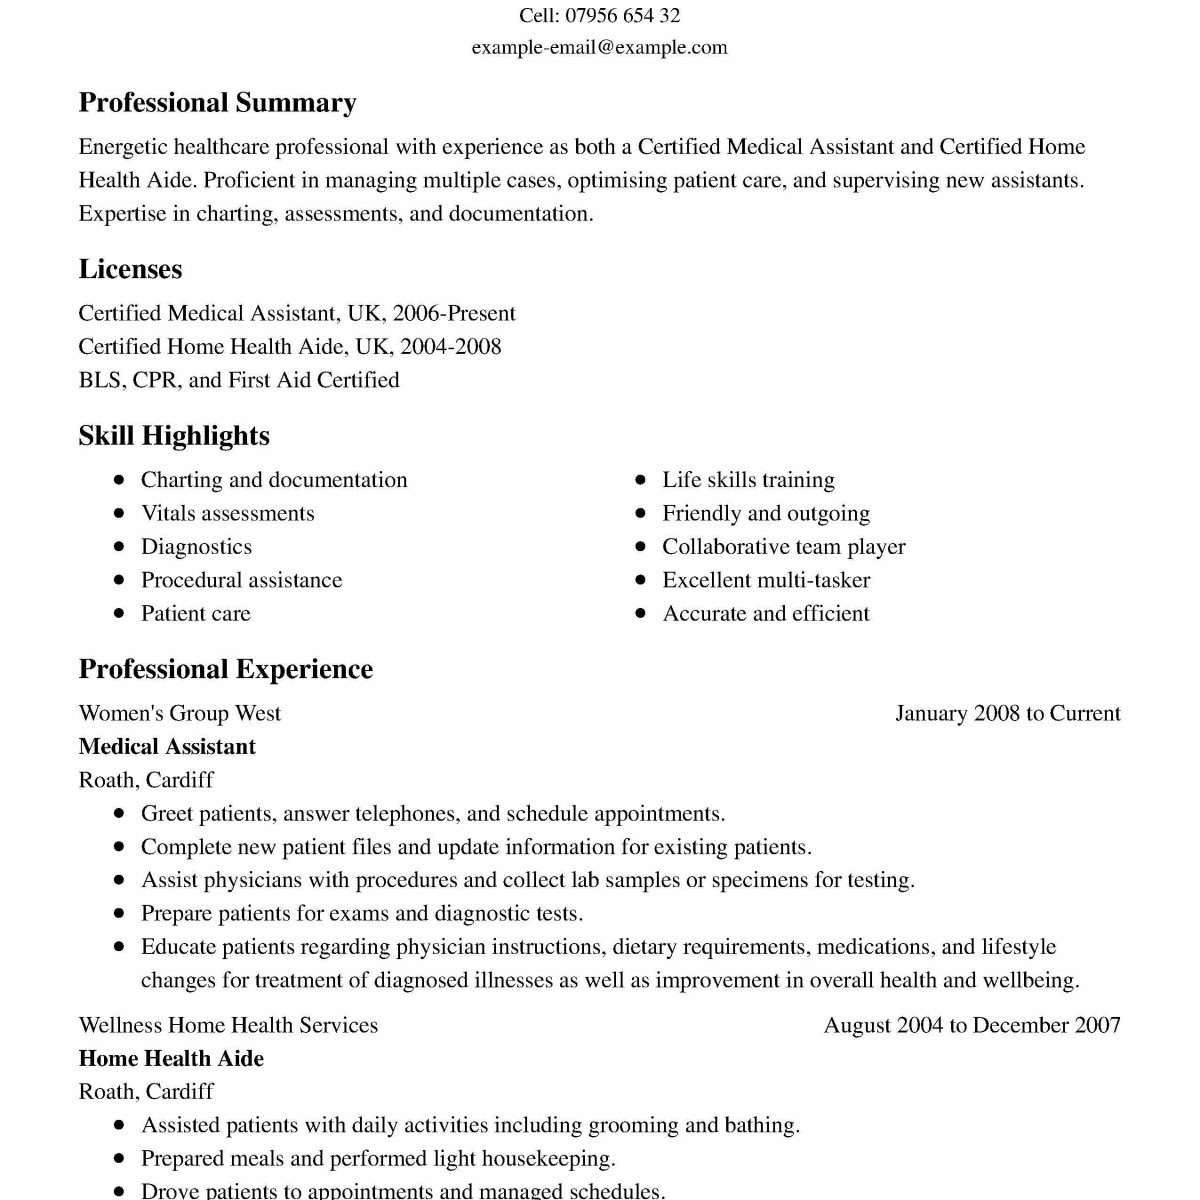 Resume Summary Ideas - Resume Professional Summary Examples Inspirational Fresh Examples